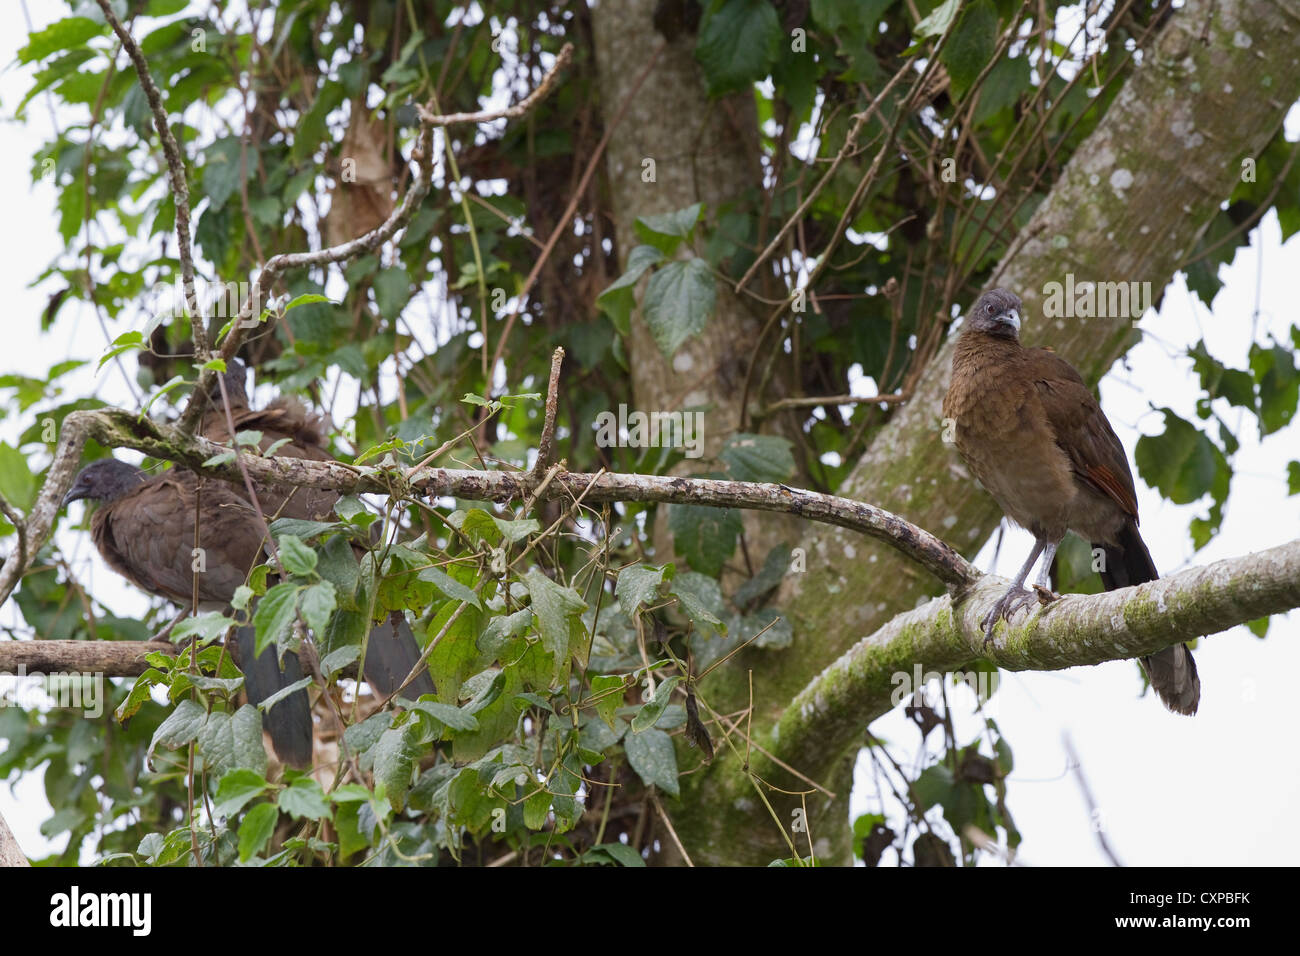 Gray-headed Chachalaca (Ortalis cinereiceps) in tree at Rancho Naturalista near Turrialba, Costa Rica. - Stock Image